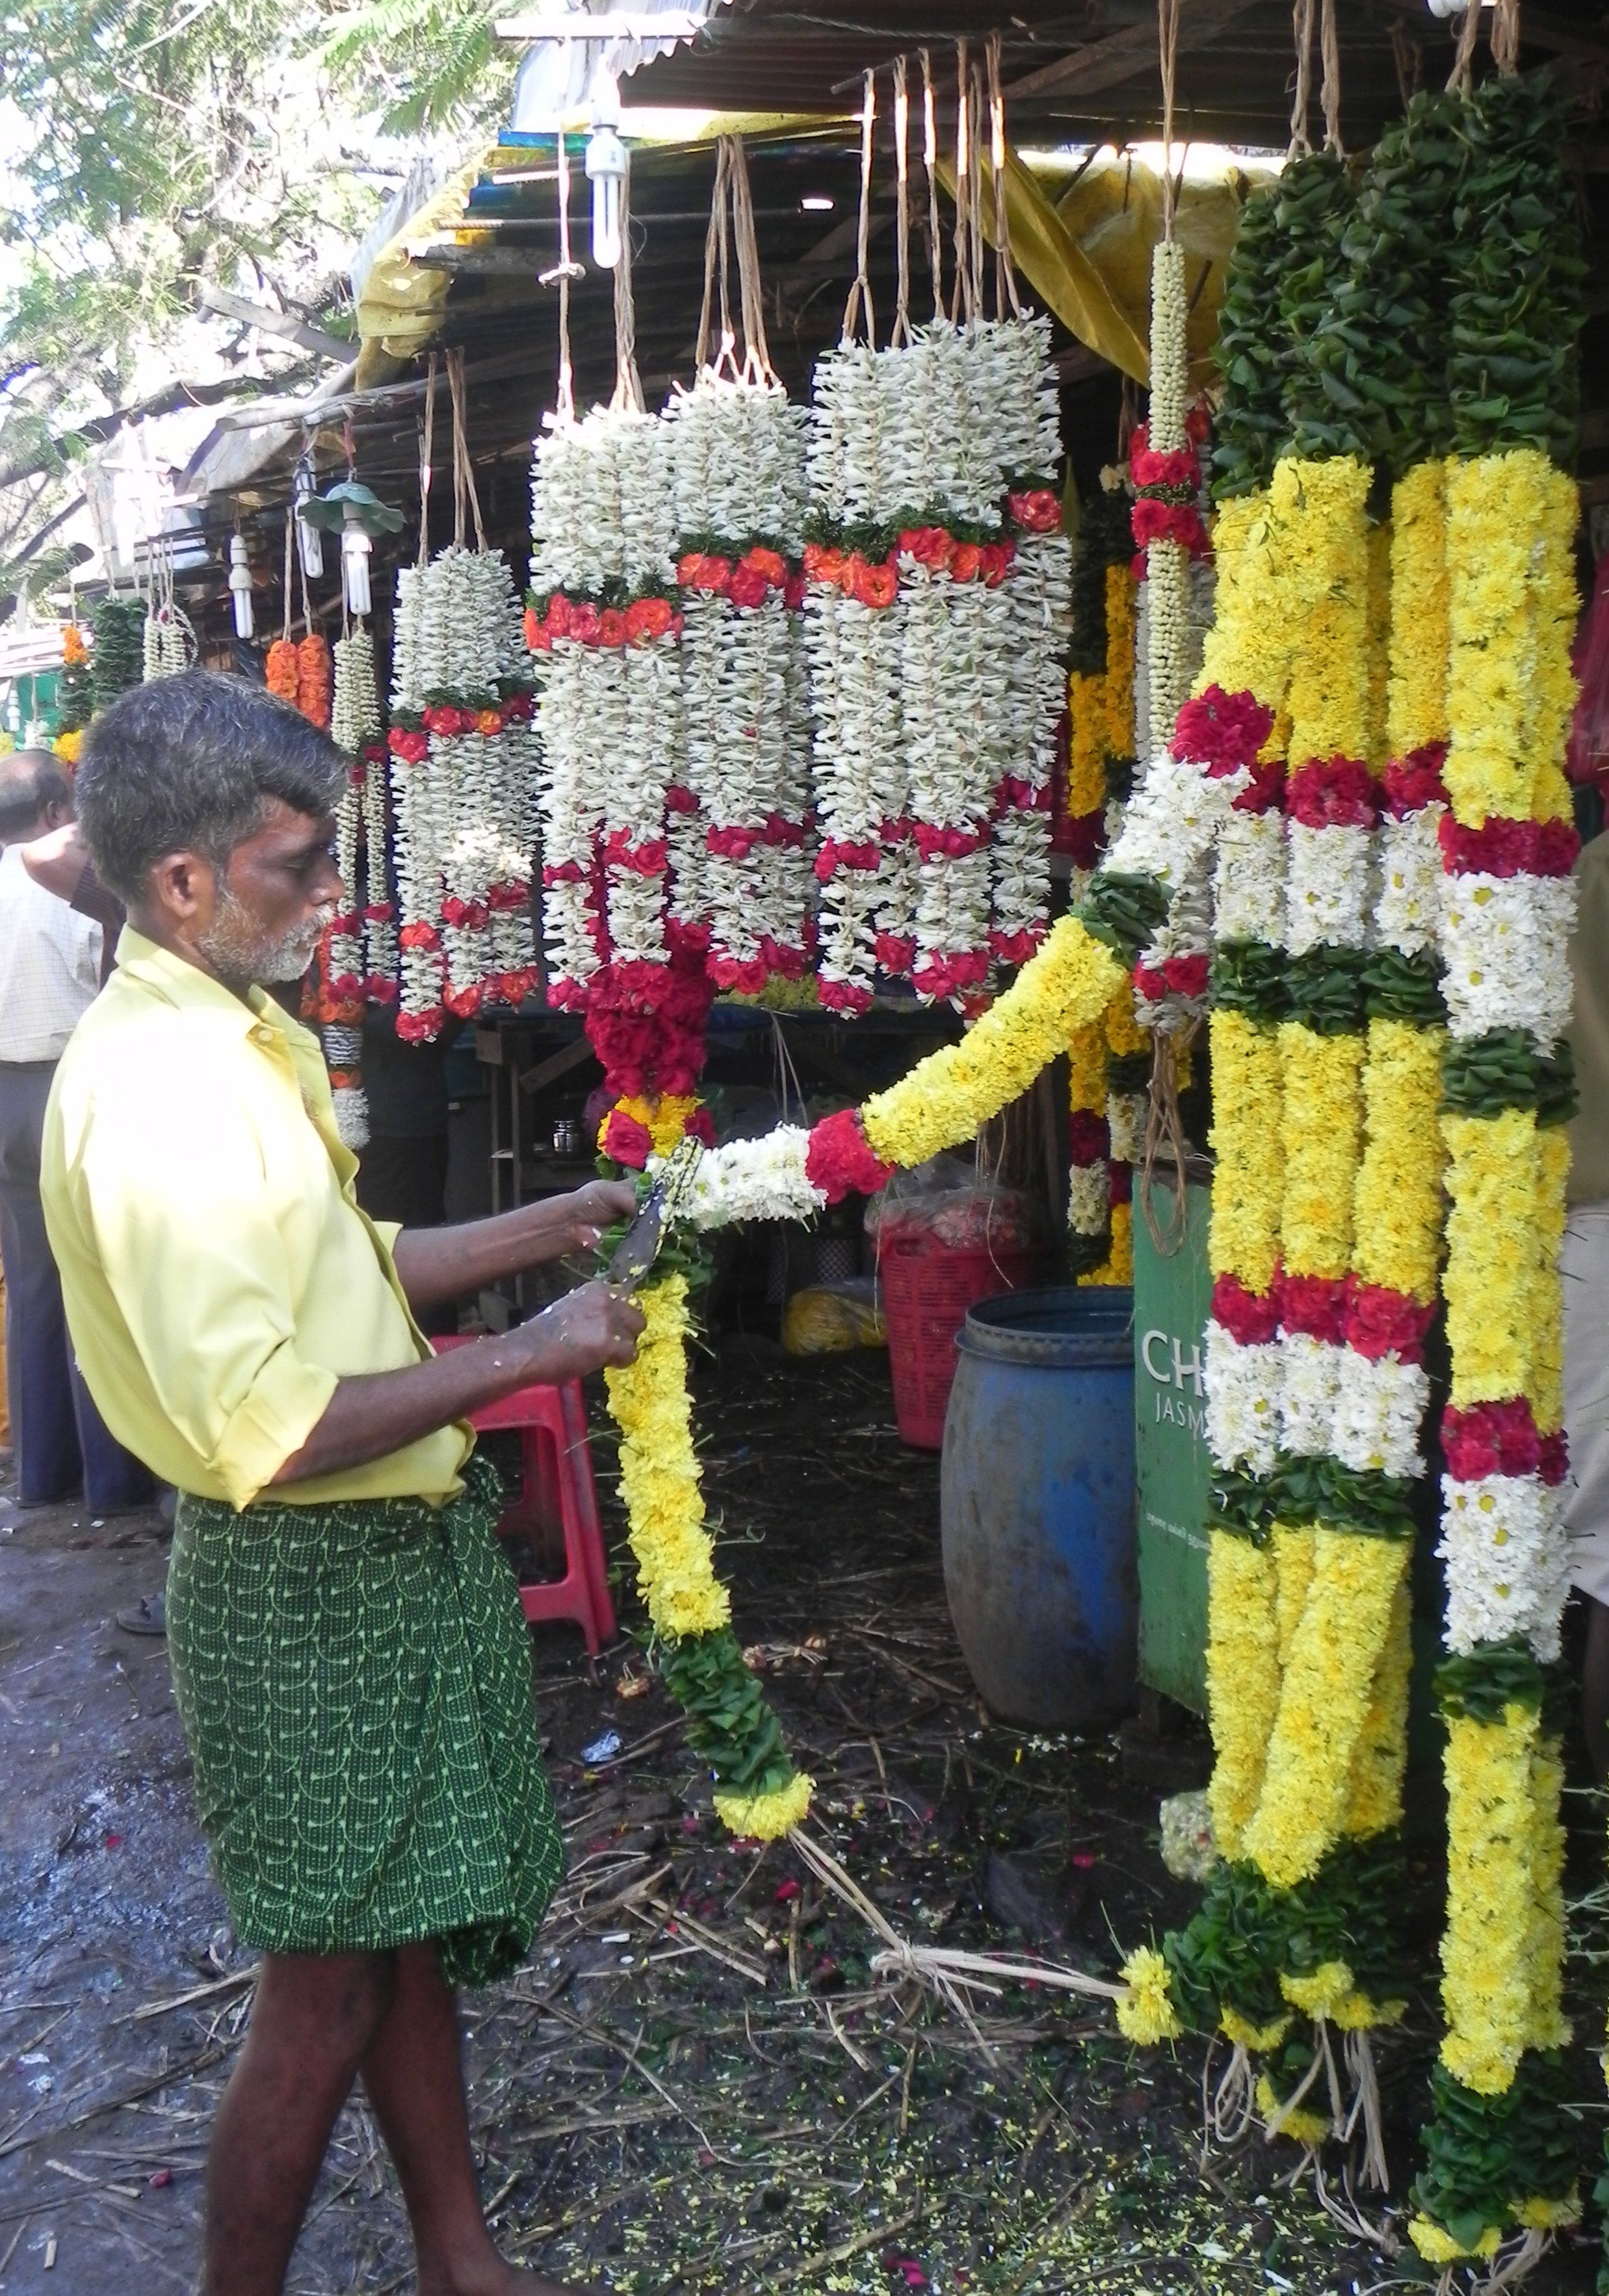 Man trimming his Flower garlands, Chennai, India | At the Market ...